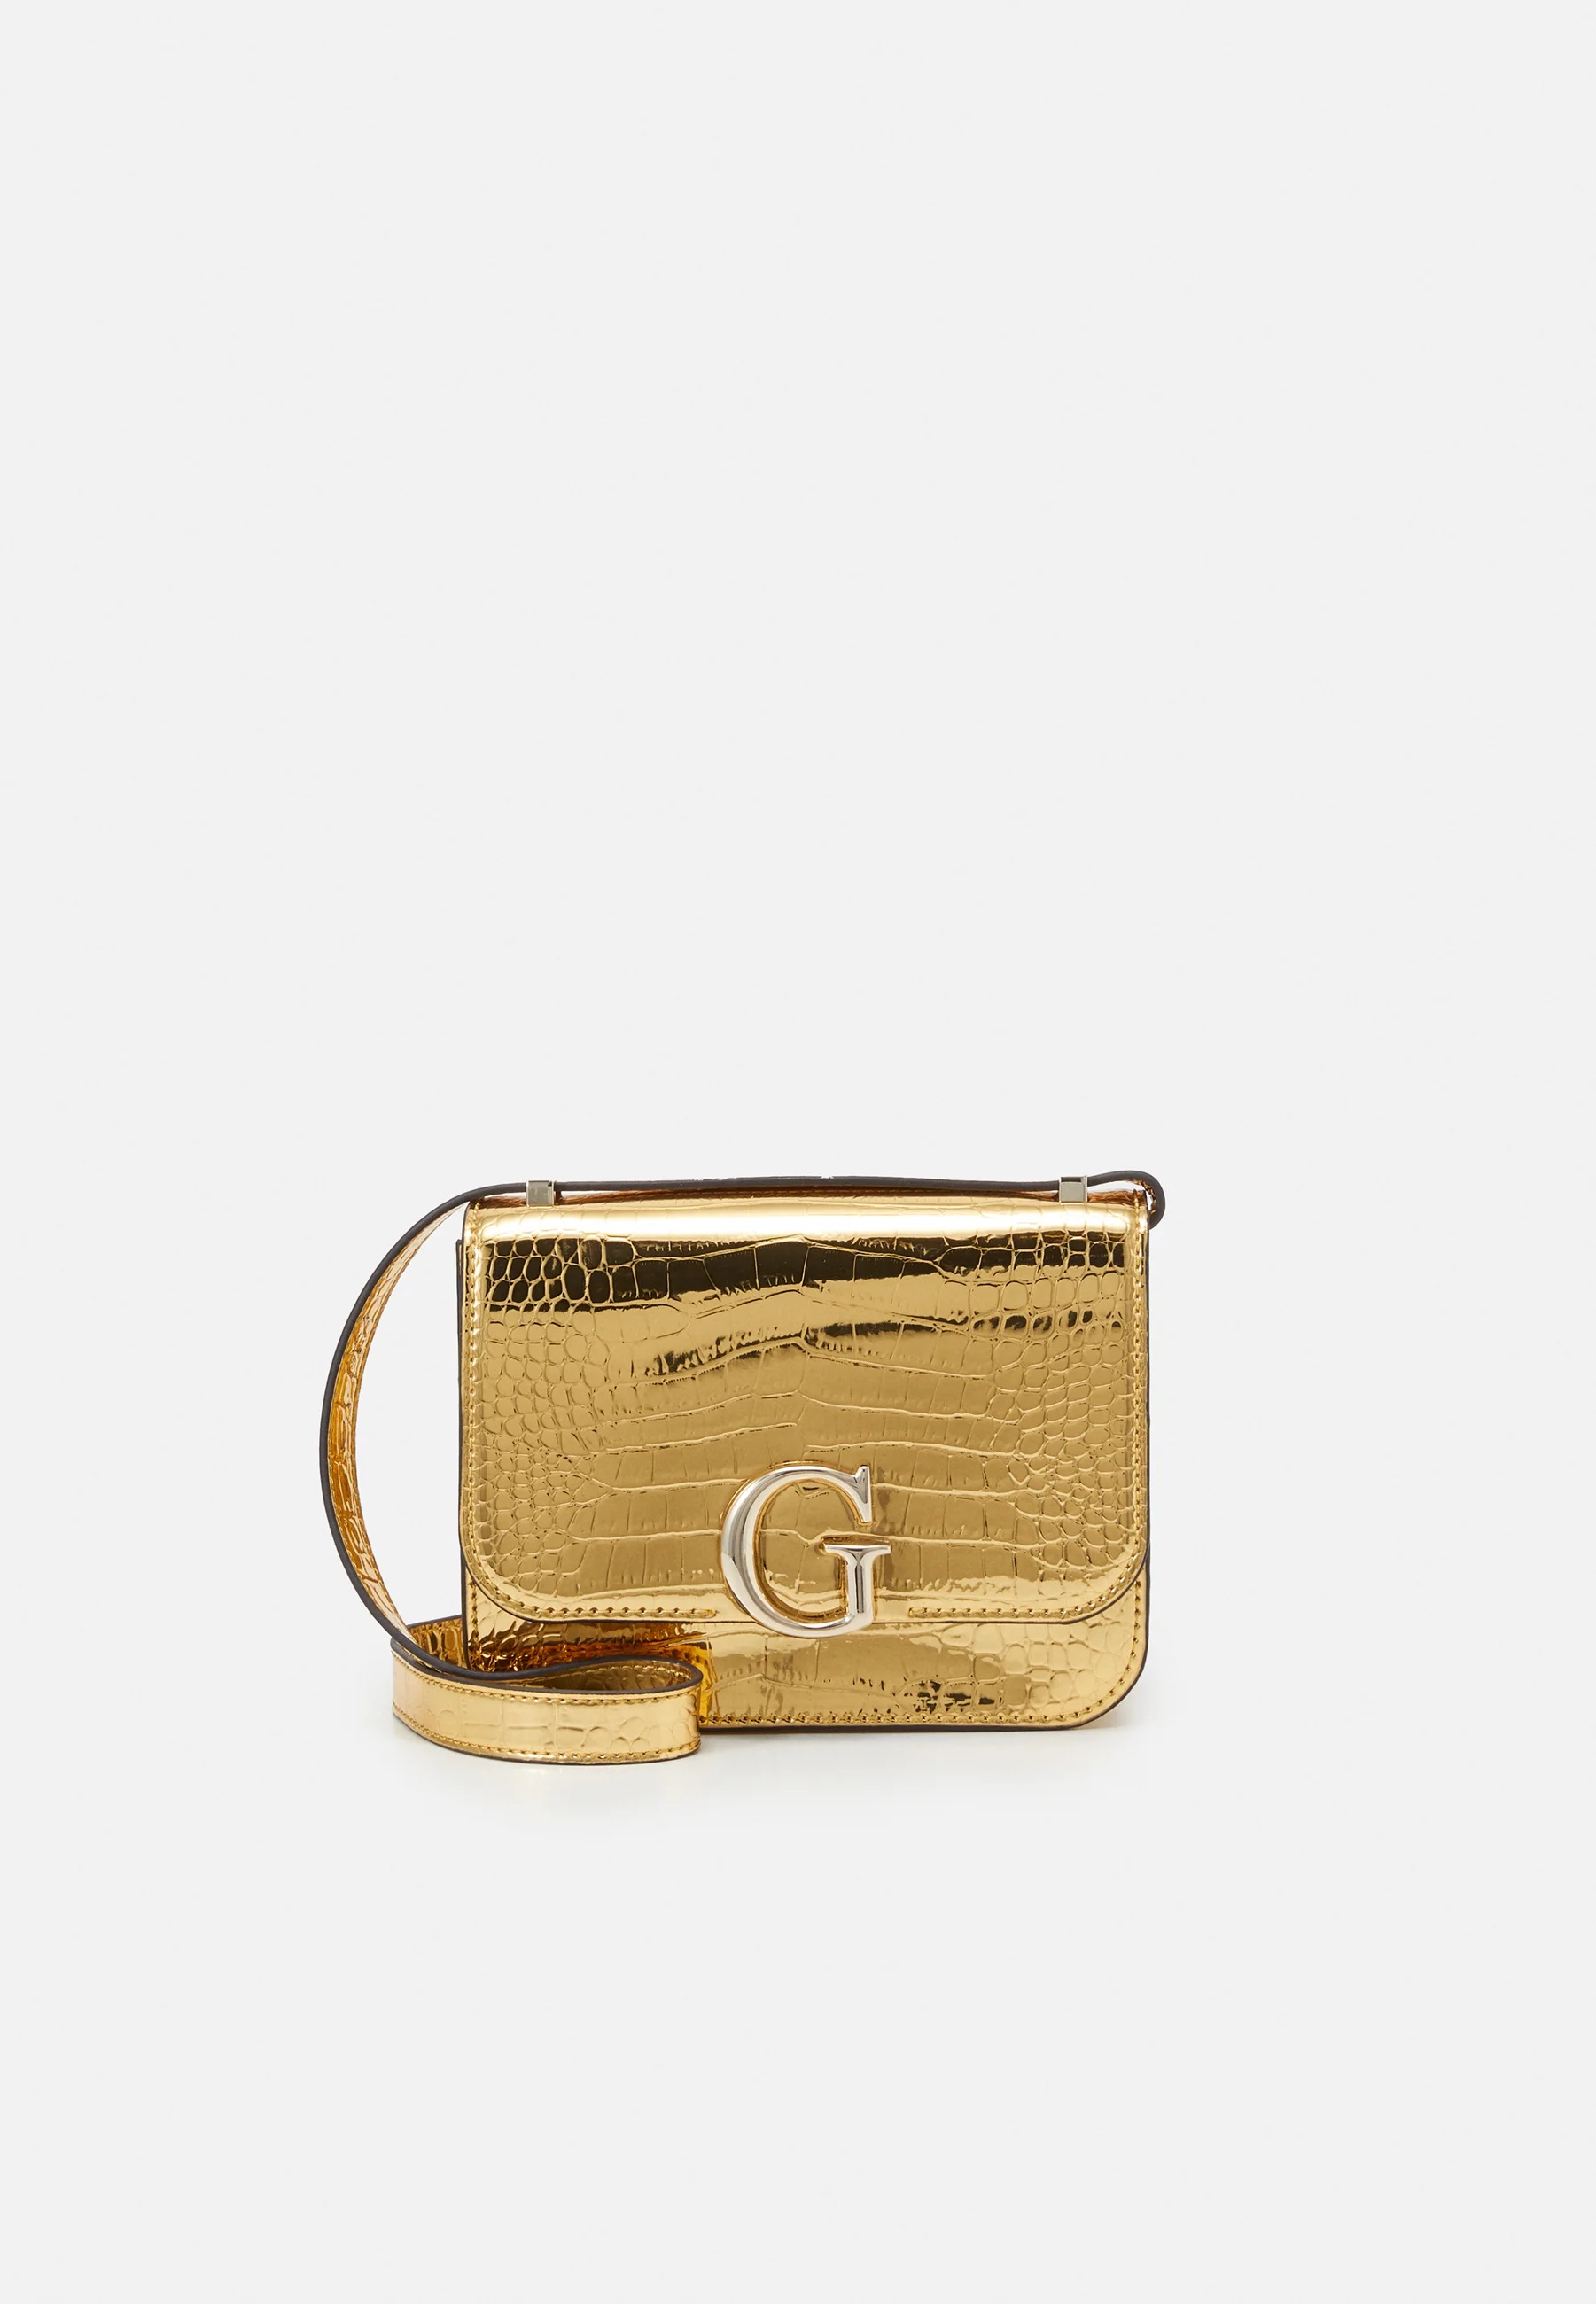 Tracolla Guess Donna Gold